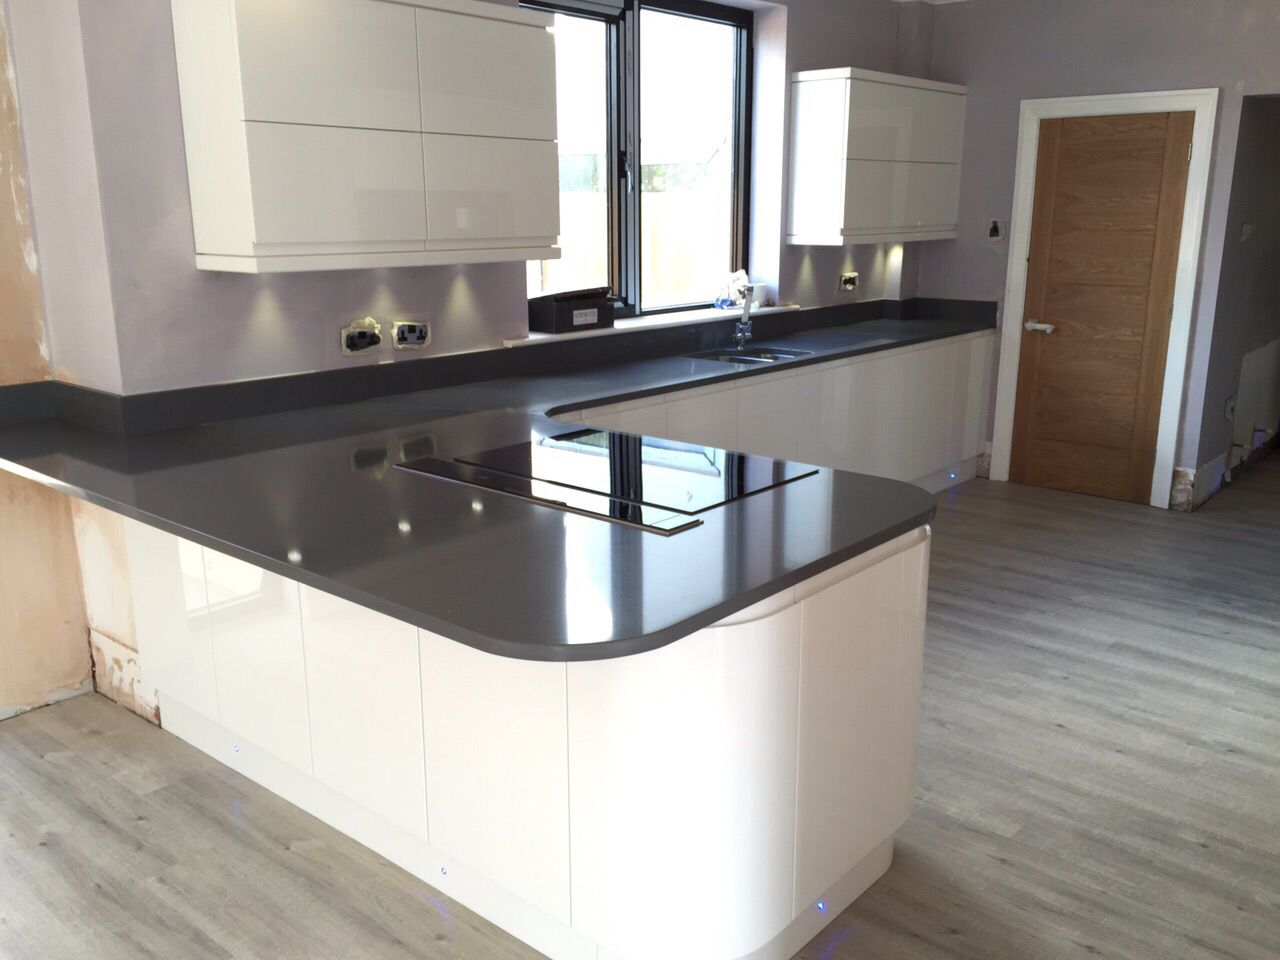 Super Modern Kitchen Ultra Modern Gloss White Handless Kitchen With Quartz Grey